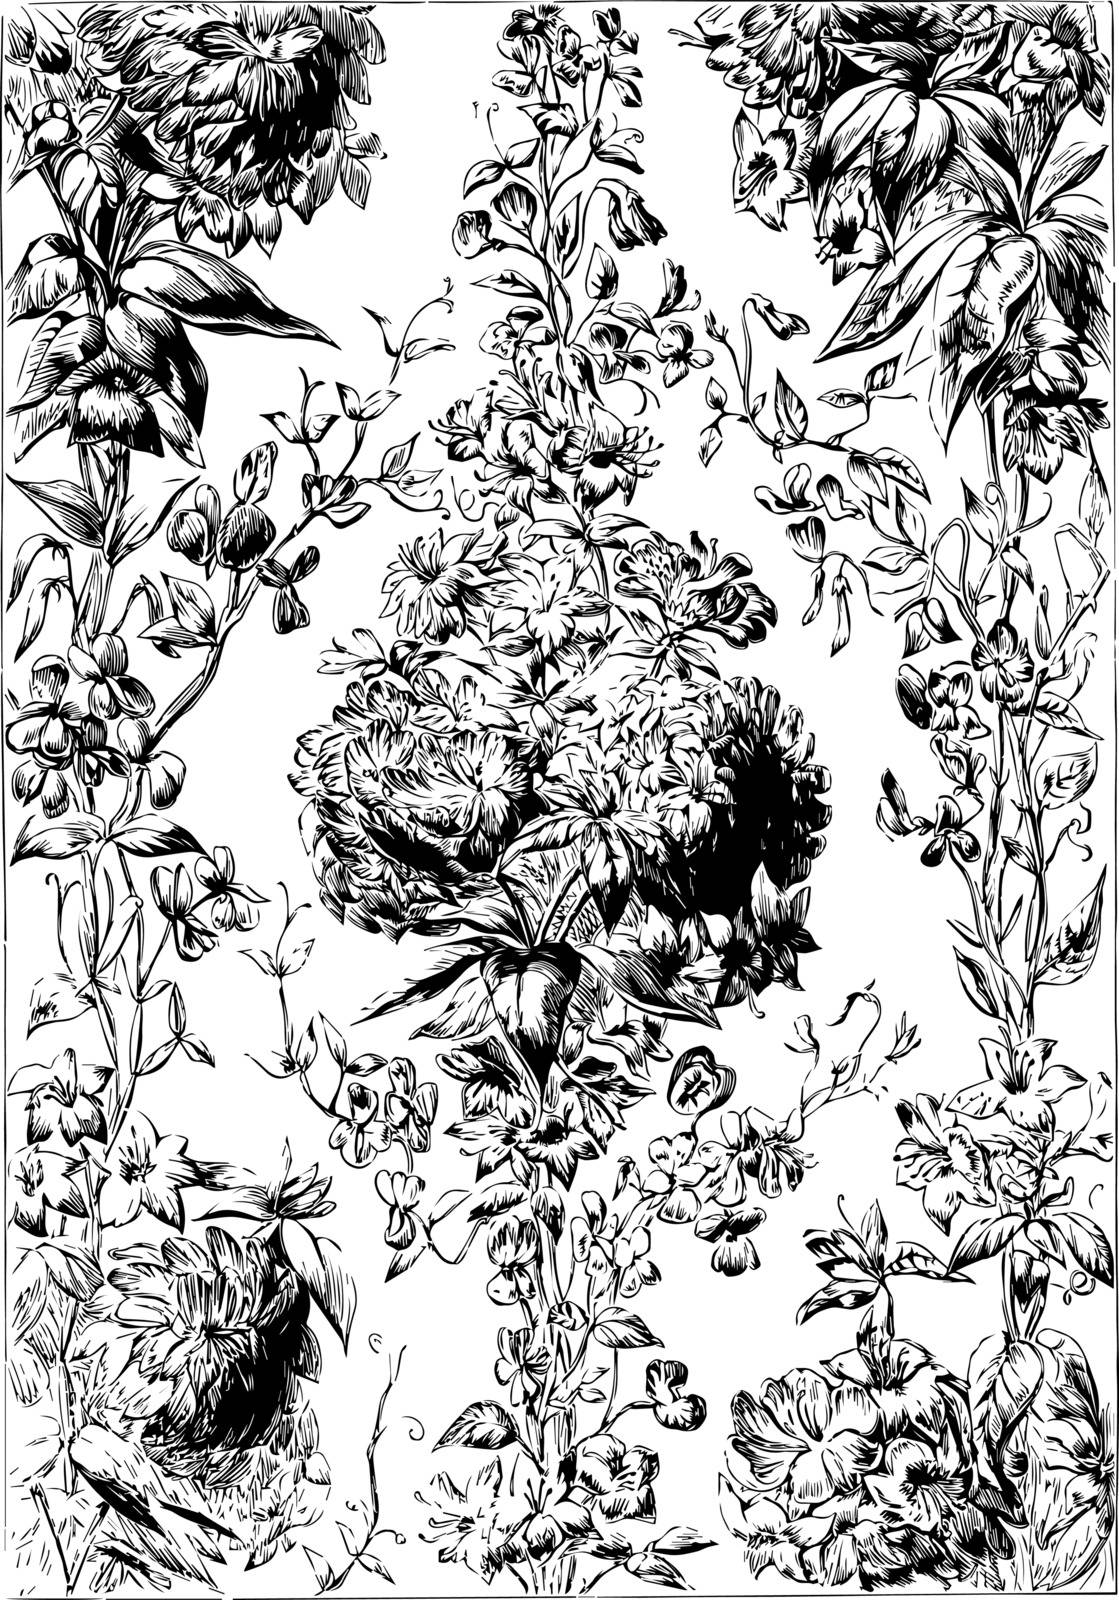 Chintz Fabric  is a cotton fabric imprinted with a colorful floral pattern, vintage line drawing or engraving illustration.